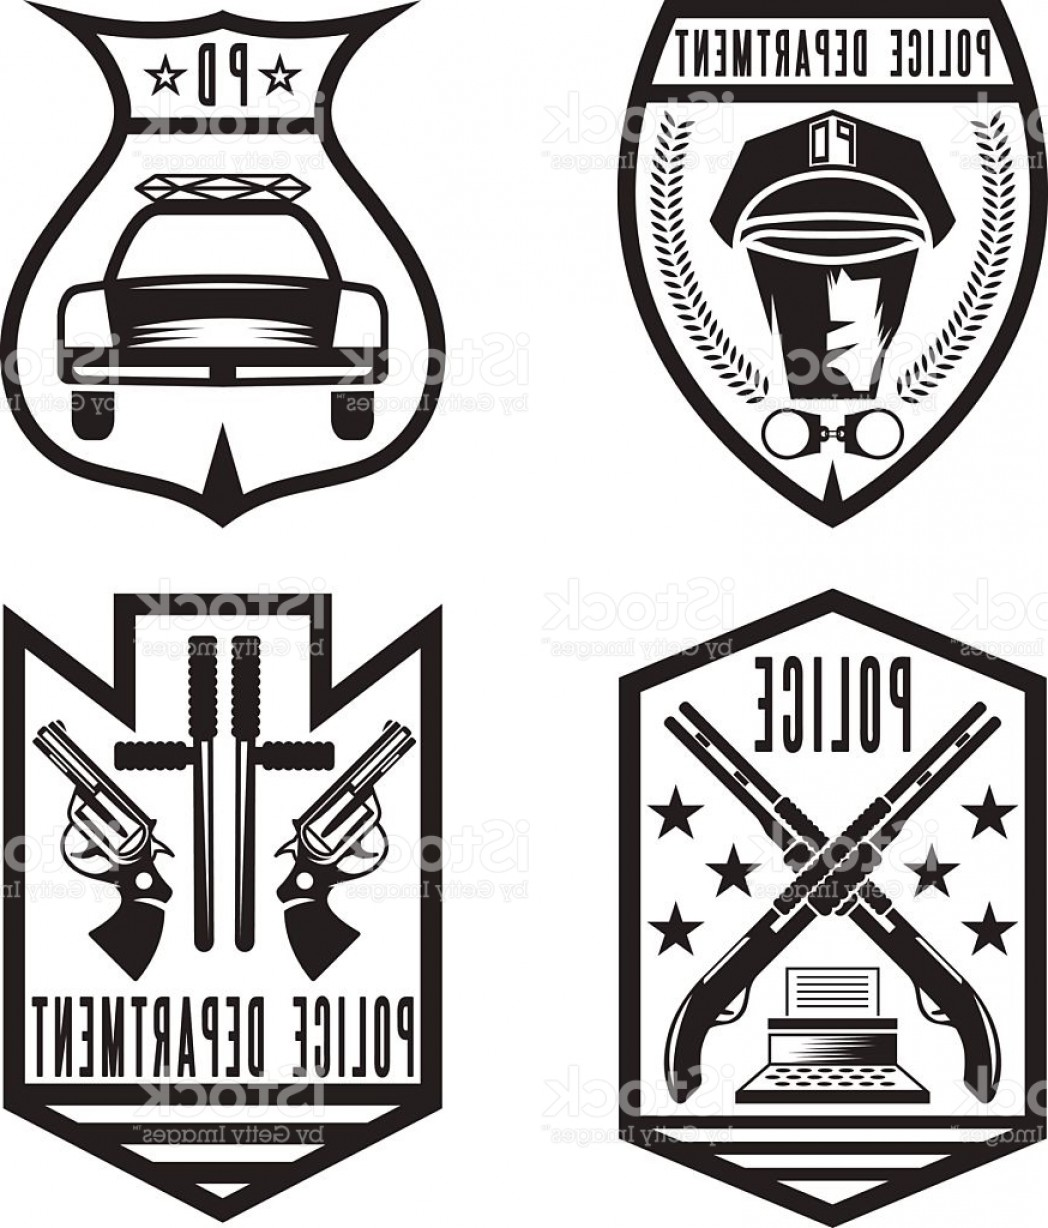 Law Enforcement Badges Vector: Set Of Vintage Police Law Enforcement Badges Gm